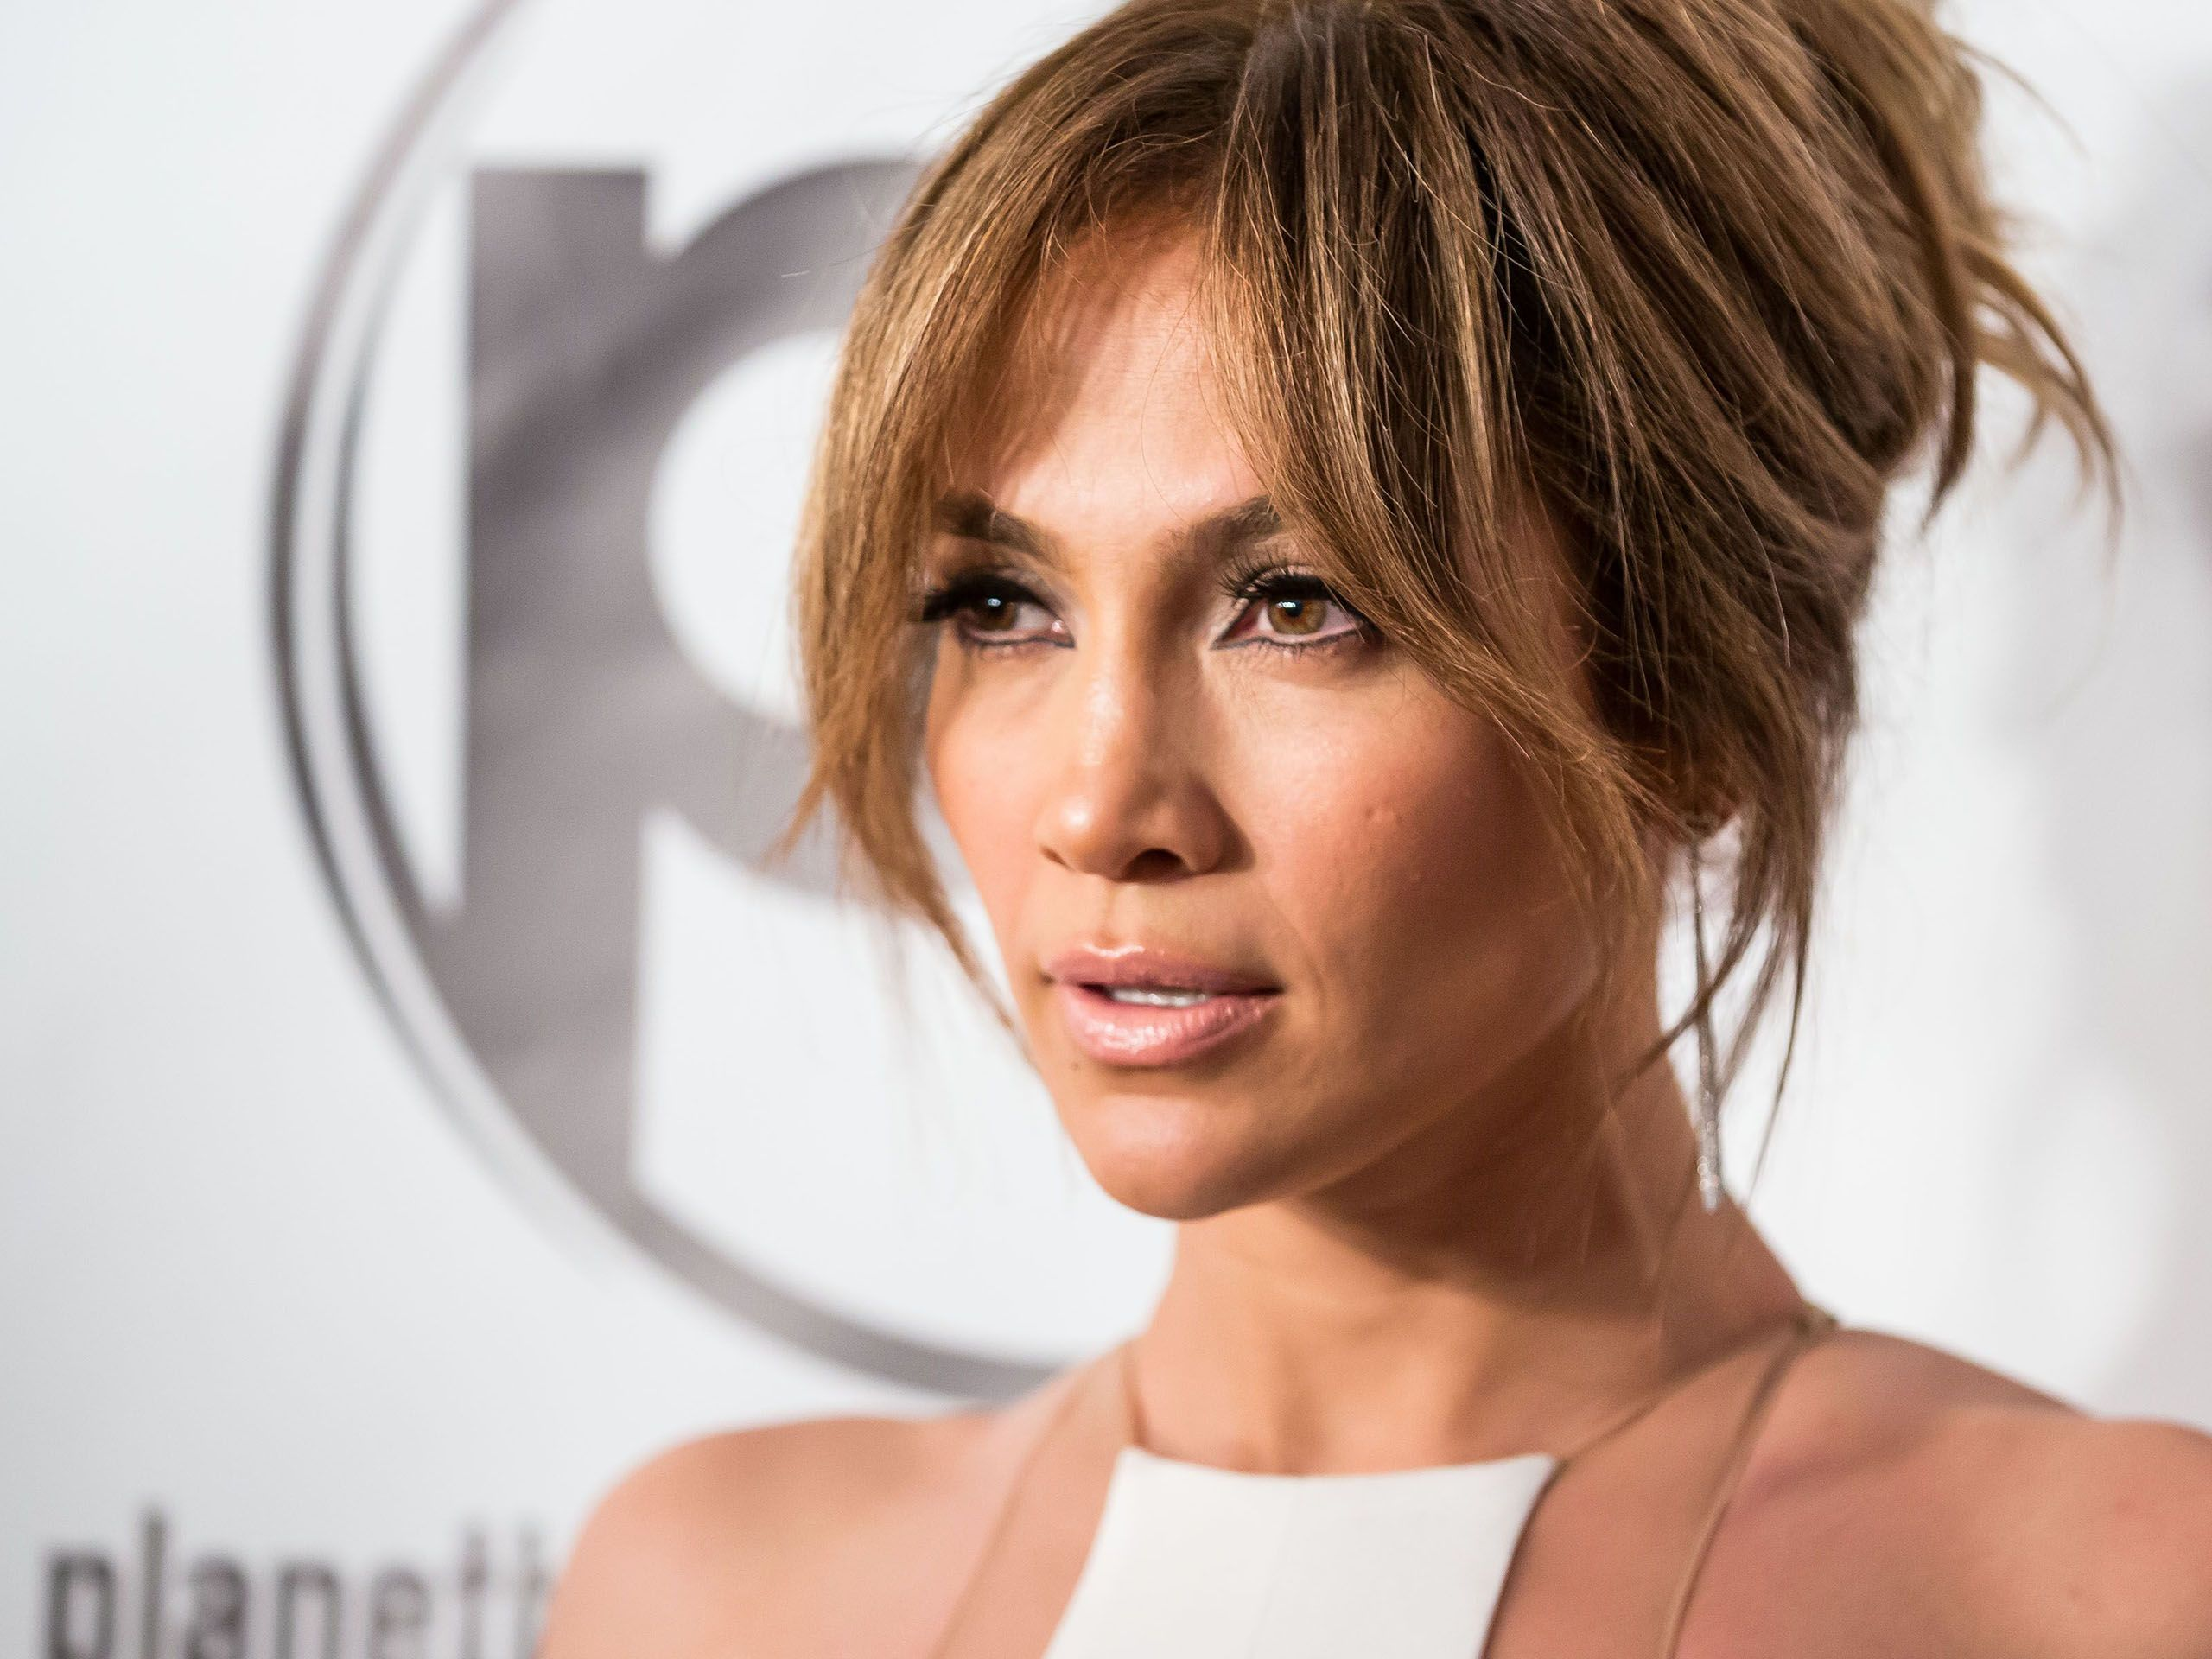 jennifer lopez on the floor скачатьjennifer lopez mp3, jennifer lopez песни, jennifer lopez papi, jennifer lopez on the floor, jennifer lopez 2017, jennifer lopez video, jennifer lopez 2016, jennifer lopez films, jennifer lopez on the floor скачать, jennifer lopez papi скачать, jennifer lopez feel the light, jennifer lopez клипы, jennifer lopez brave, jennifer lopez instagram, jennifer lopez que hiciste, jennifer lopez drake, jennifer lopez wiki, jennifer lopez vk, jennifer lopez - ain't it funny, jennifer lopez still